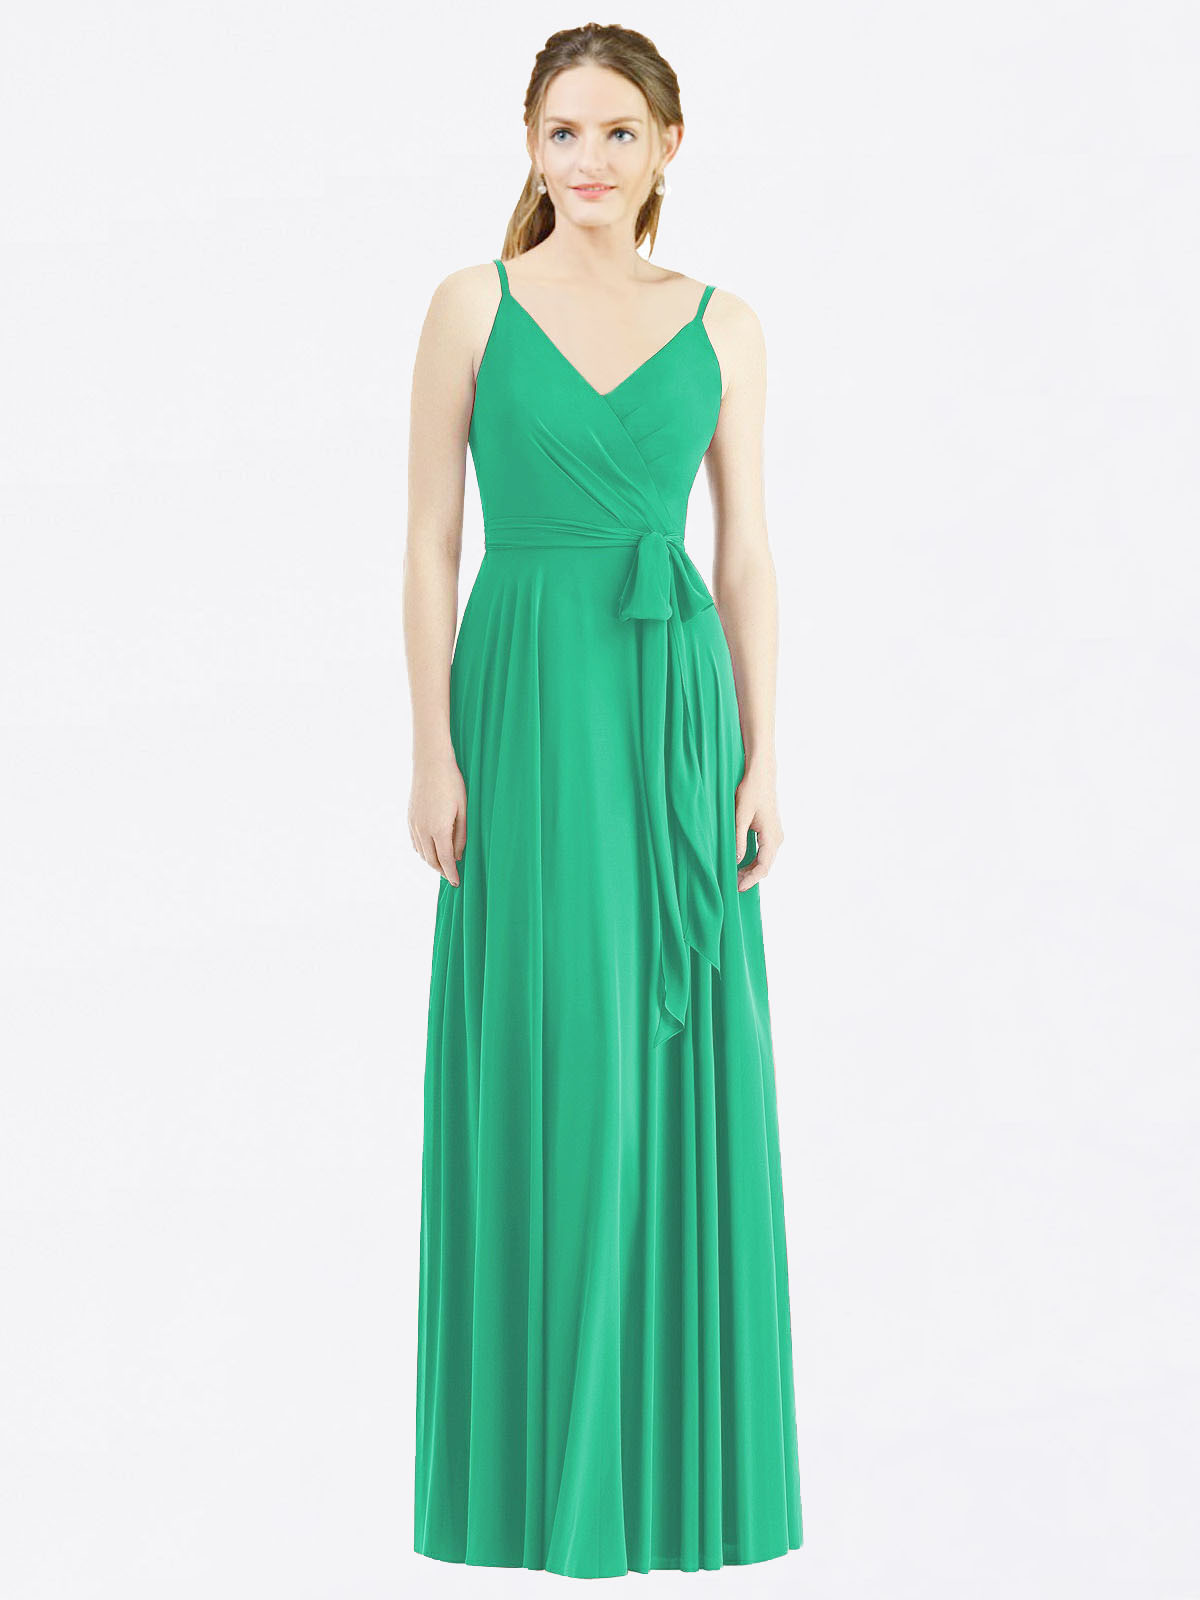 Long A-Line Spaghetti Straps, V-Neck Sleeveless Emerald Green Chiffon Bridesmaid Dress Madilyn